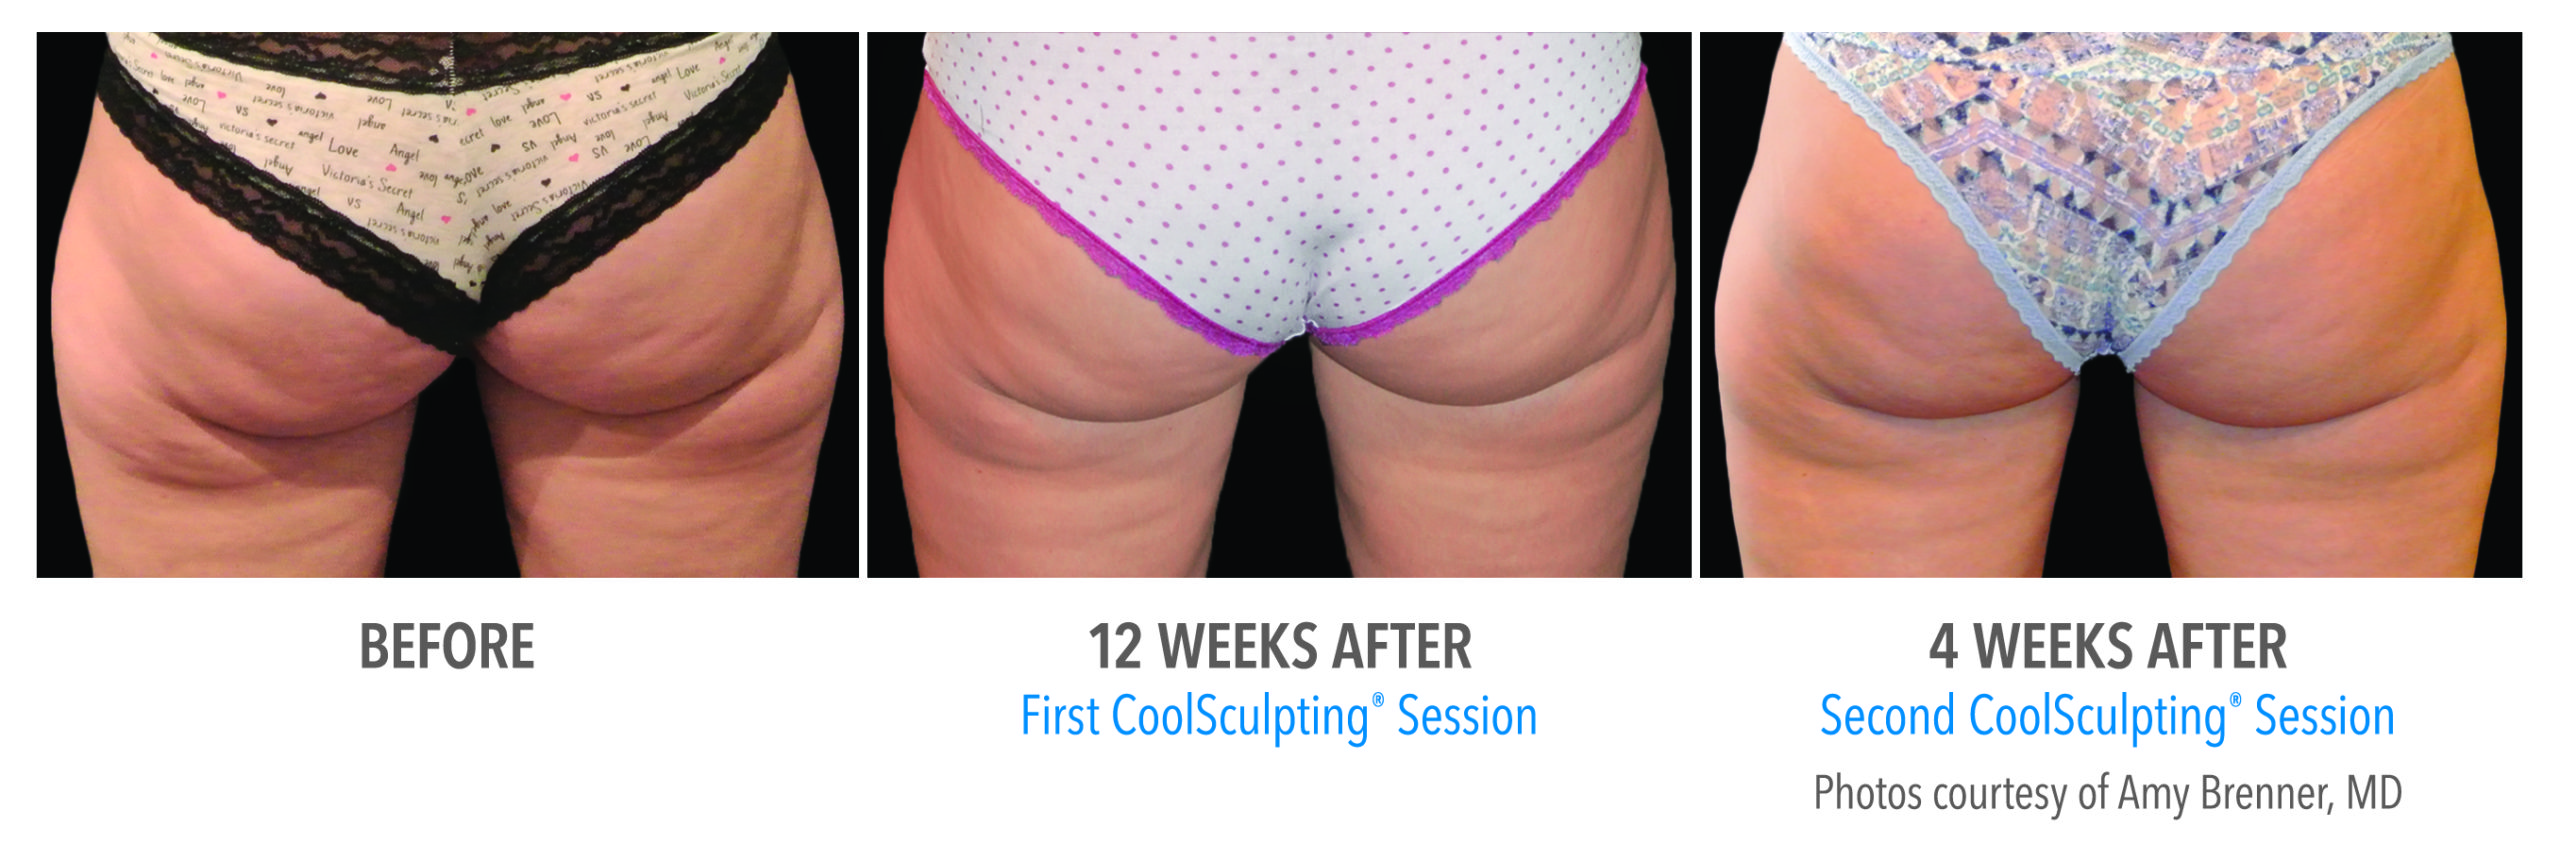 whittier-coolsculpting-thighs-banana-roll